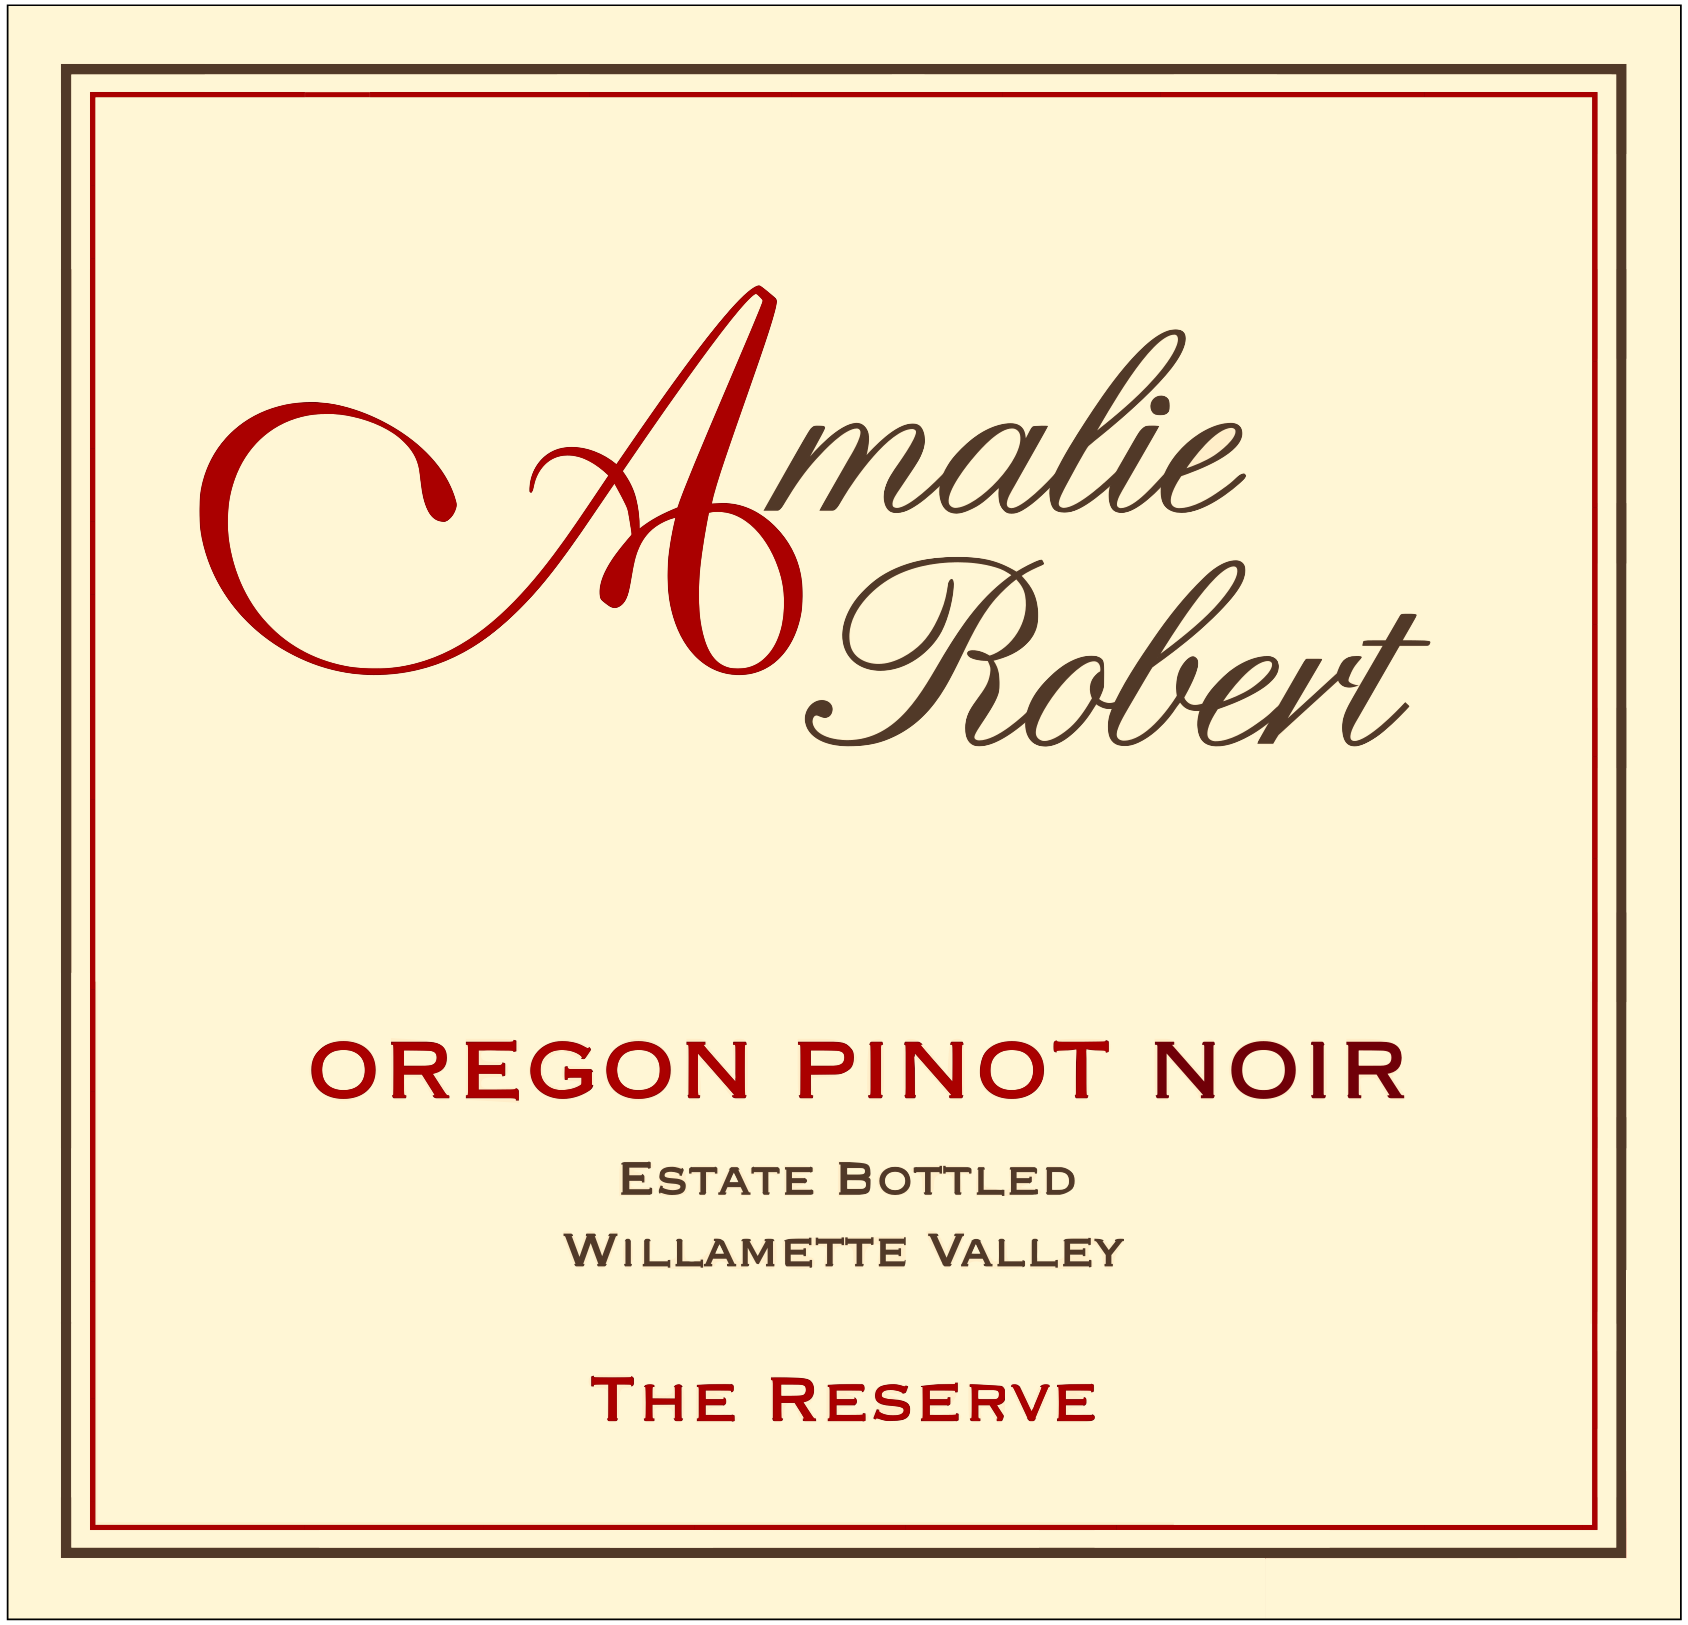 2011 The Reserve Pinot Noir